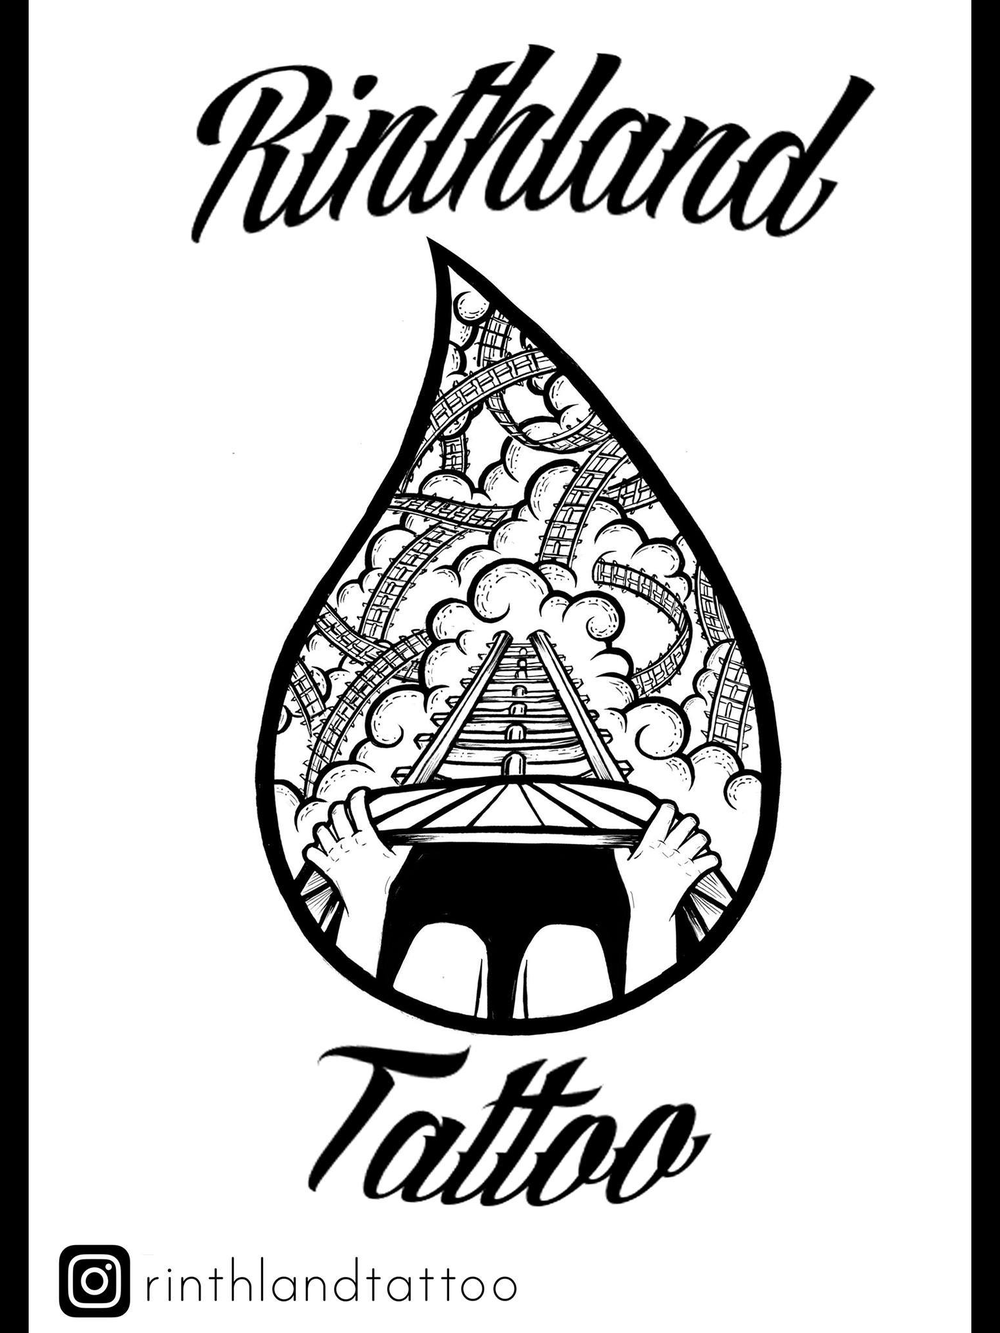 tattoo logo.PNG